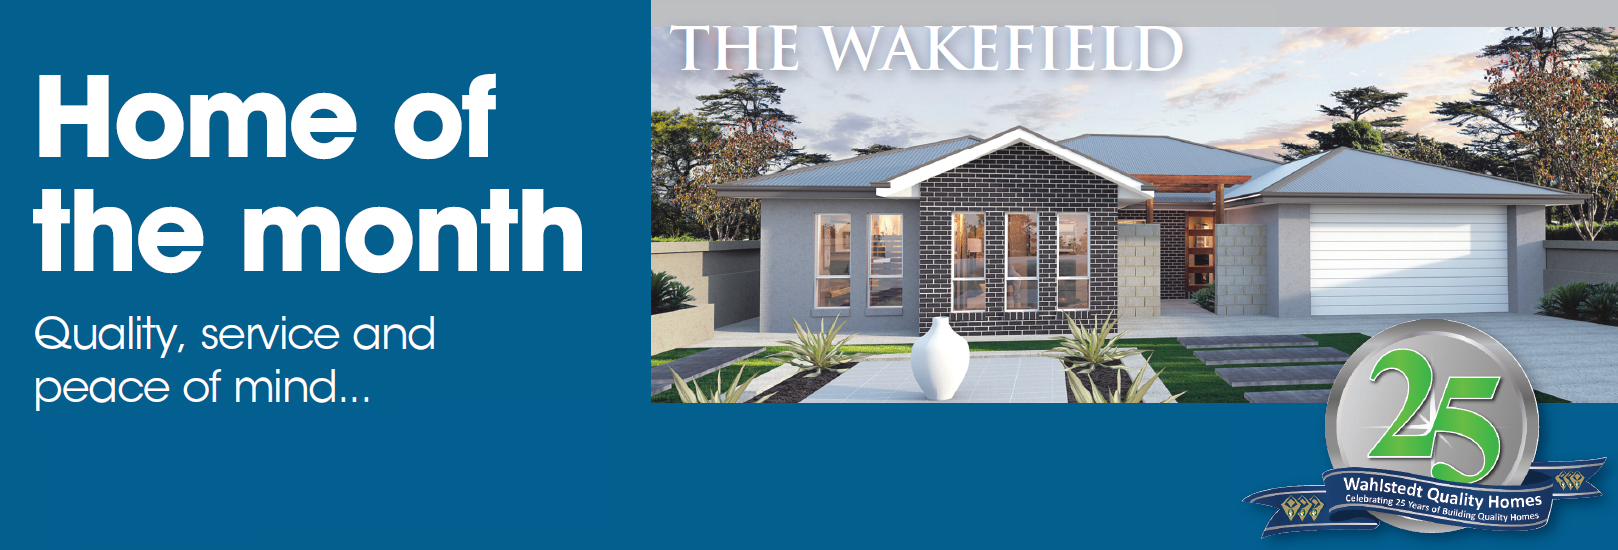 Home of the Month_JUNE 2017_The Wakefield